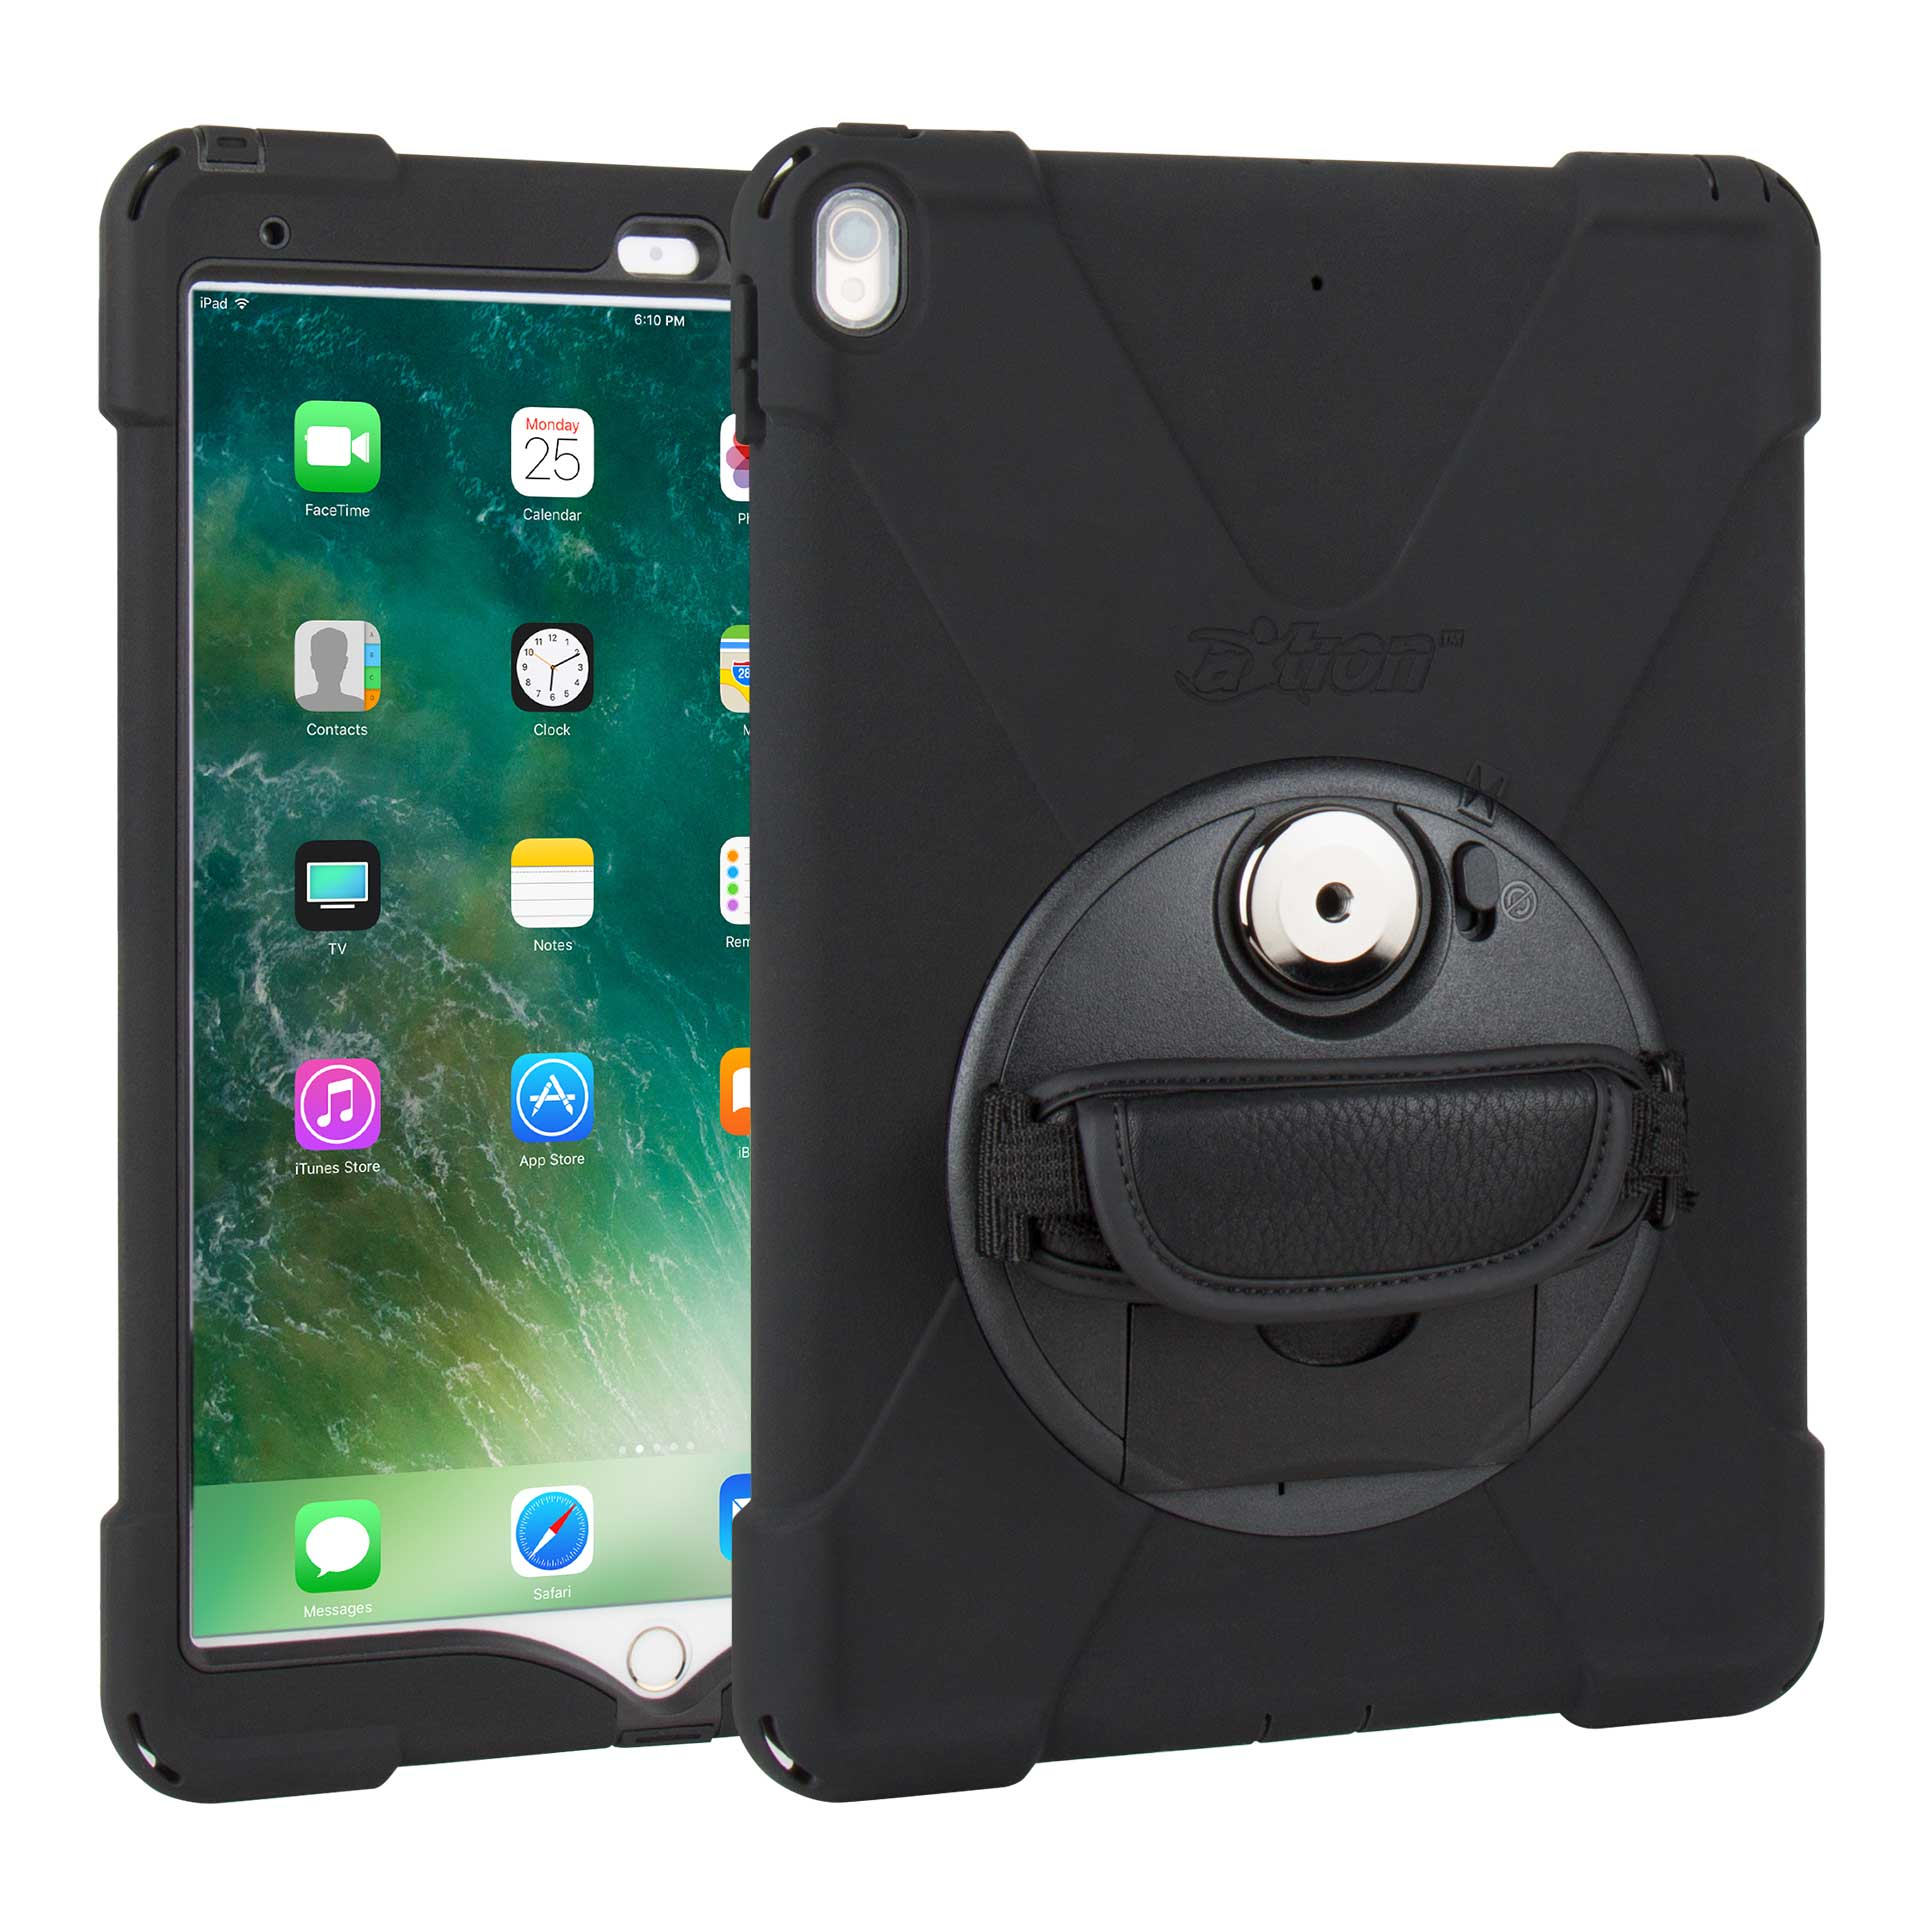 Axtion Bold Mp Rugged Water Resistant Ipad Pro 10 5 Case Cwa702